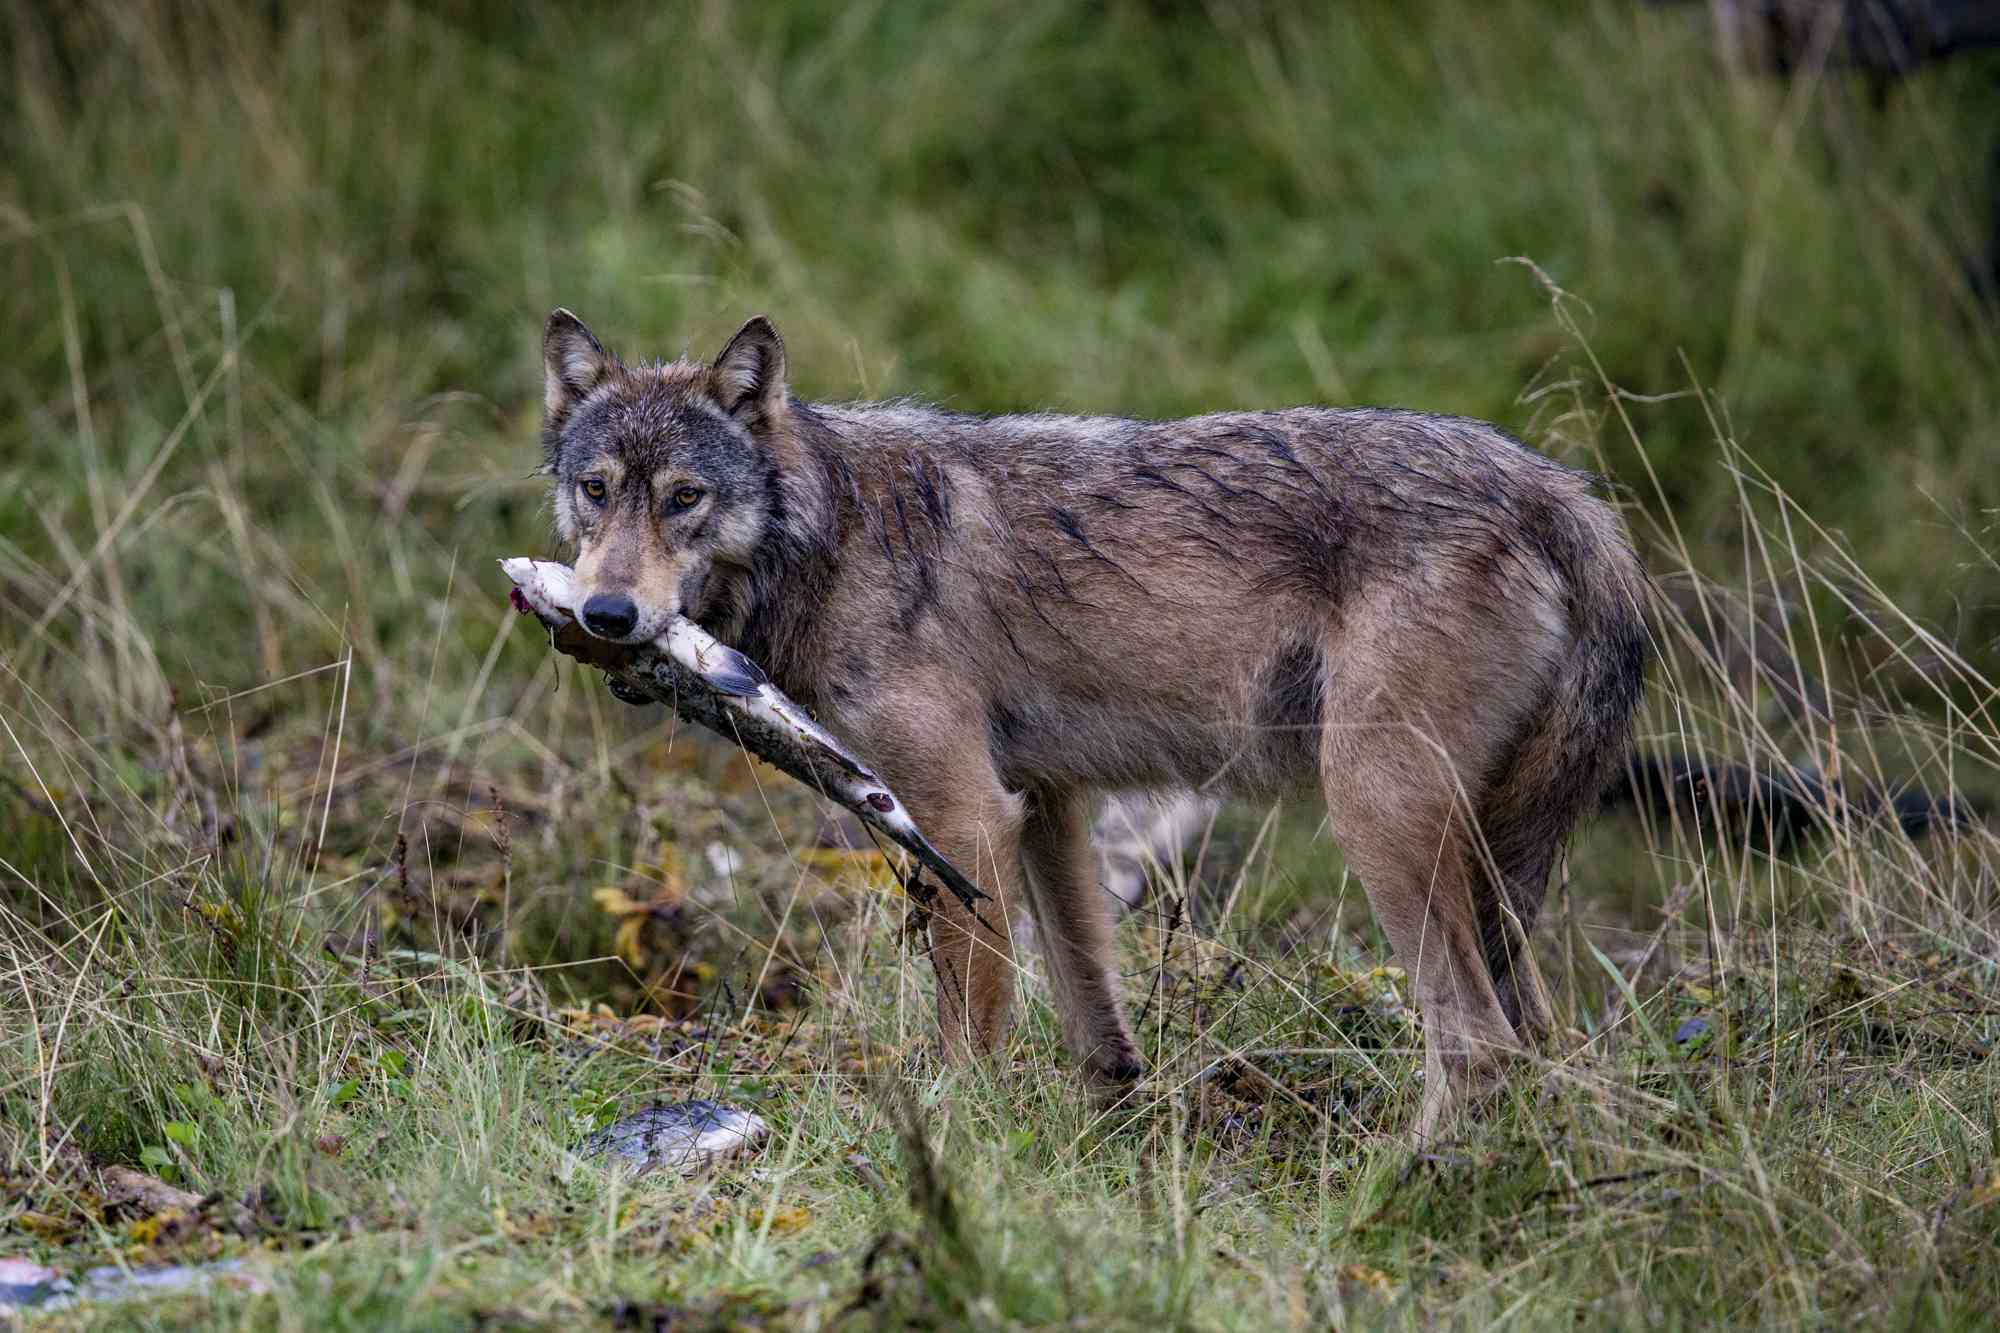 These wolves are specialists in the meals that are available along a coastline.